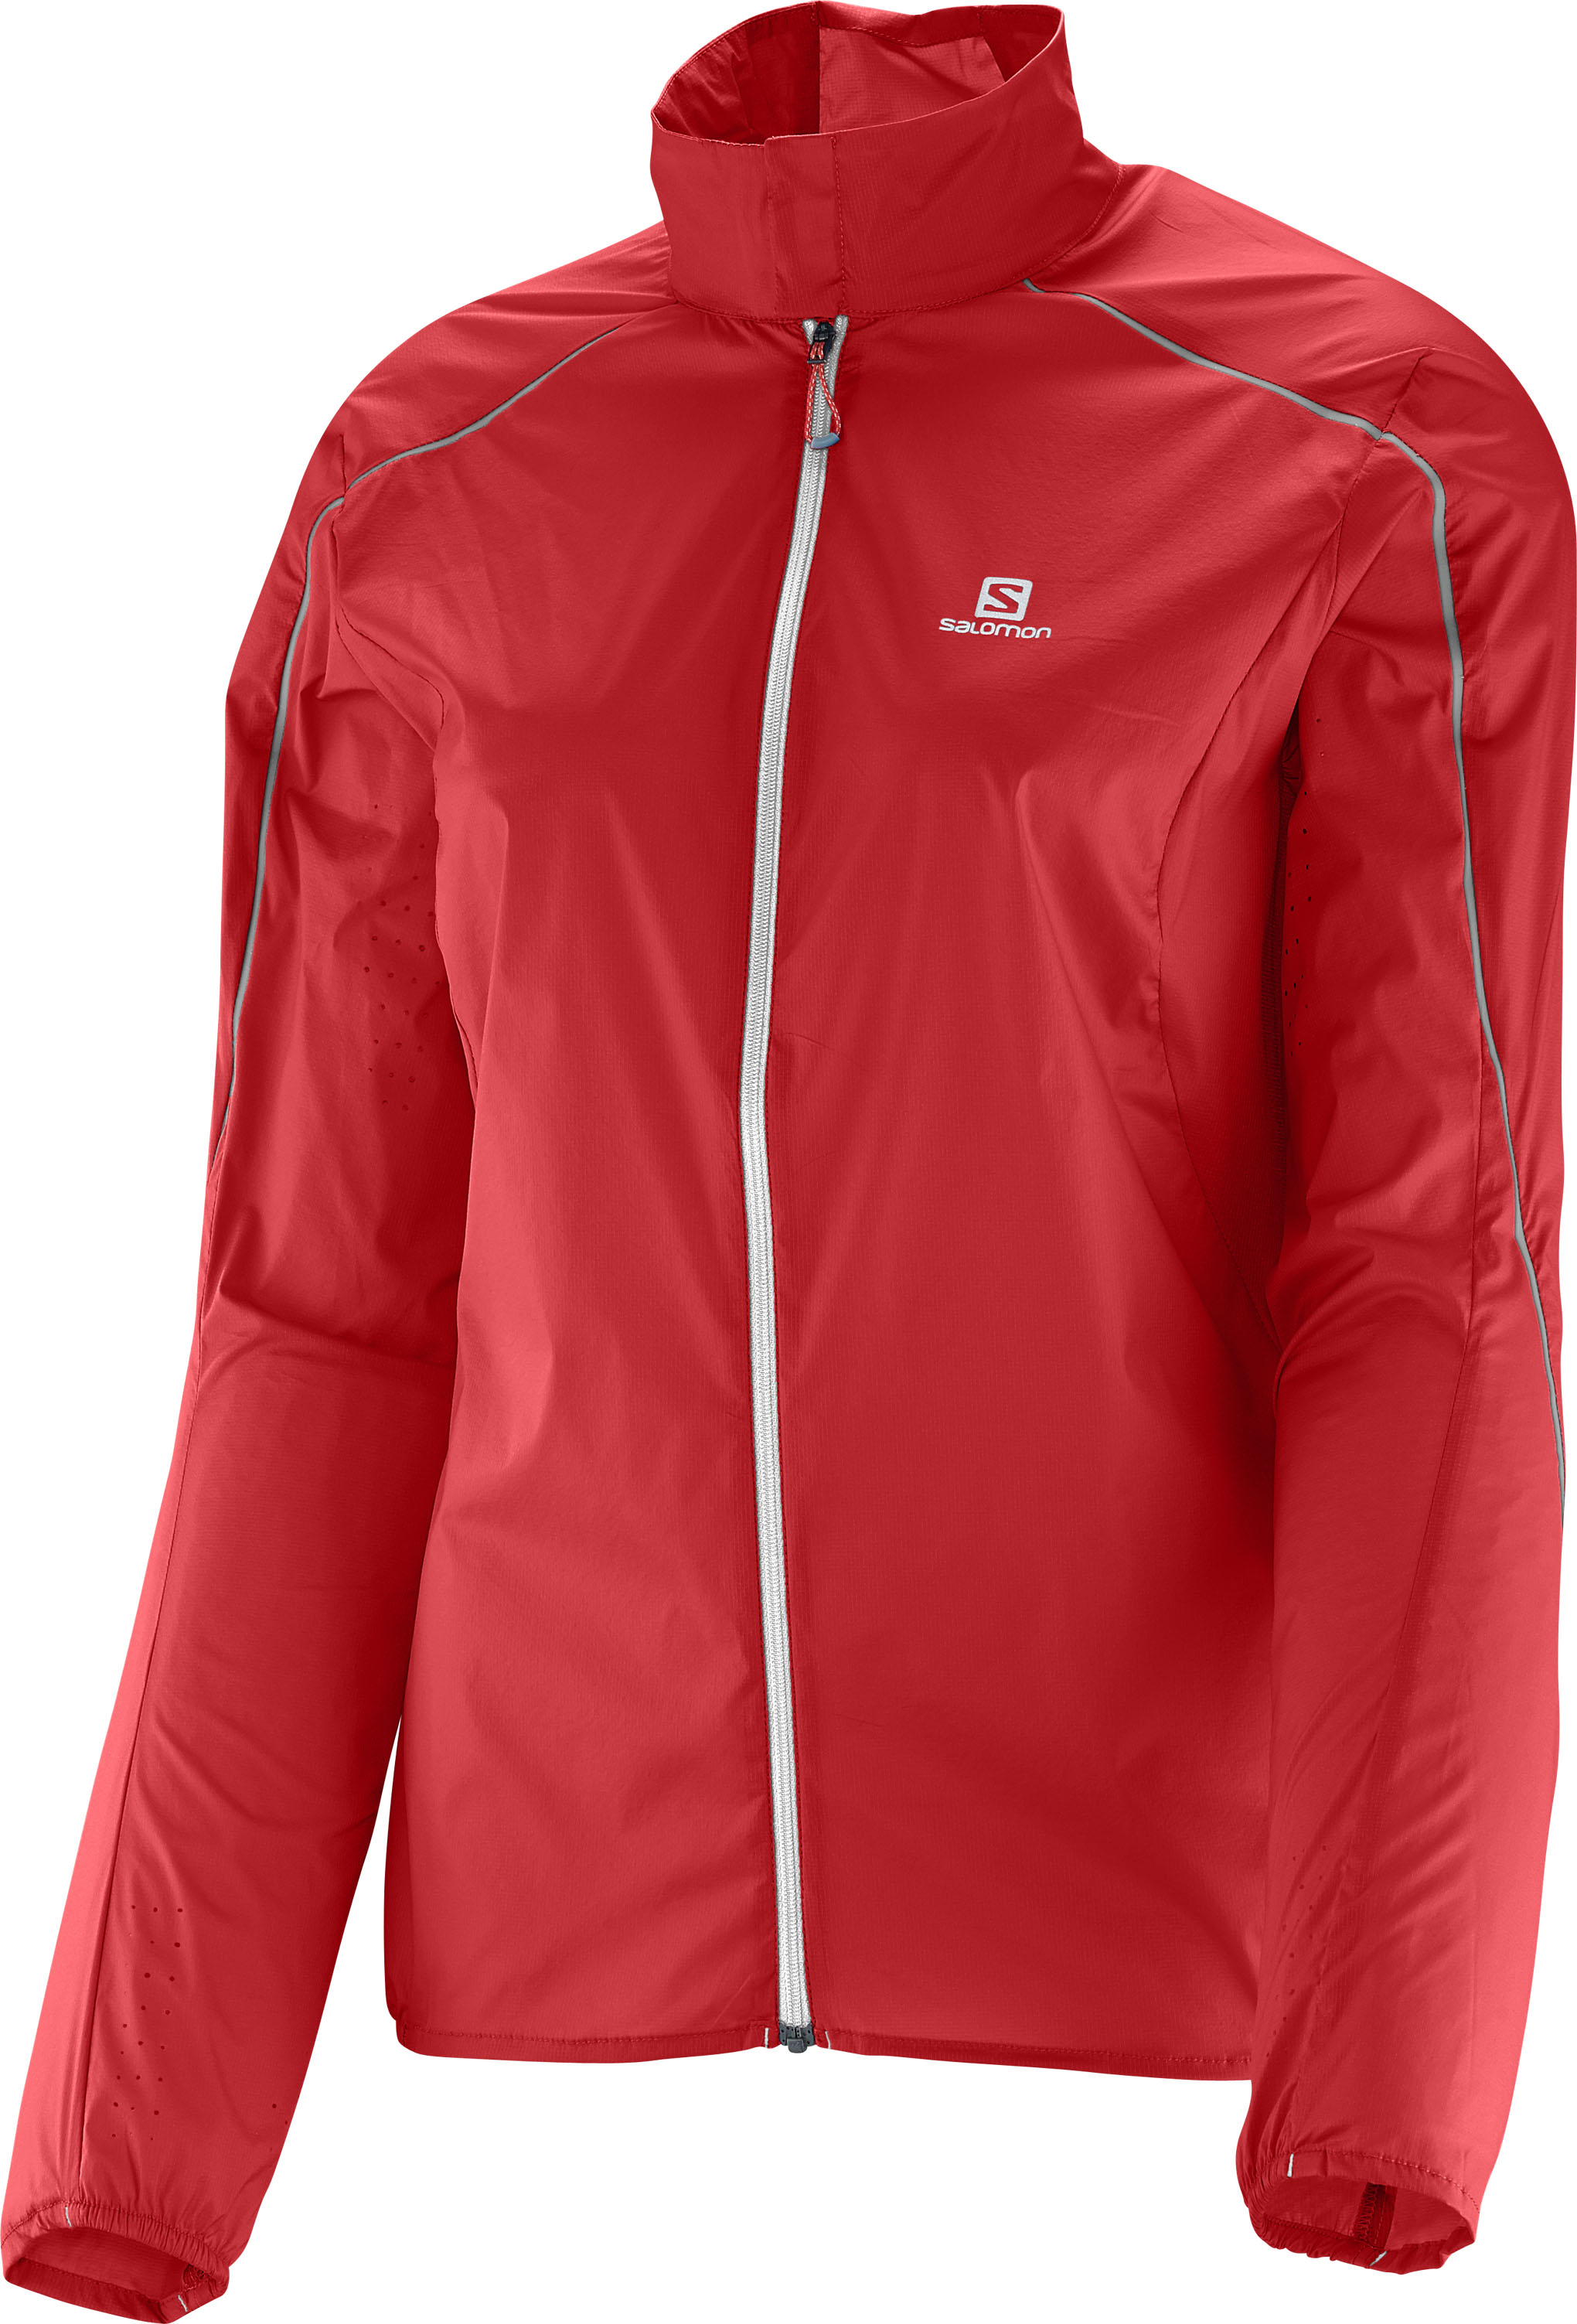 Salomon S-Lab Light Jacket W 370836 červená L